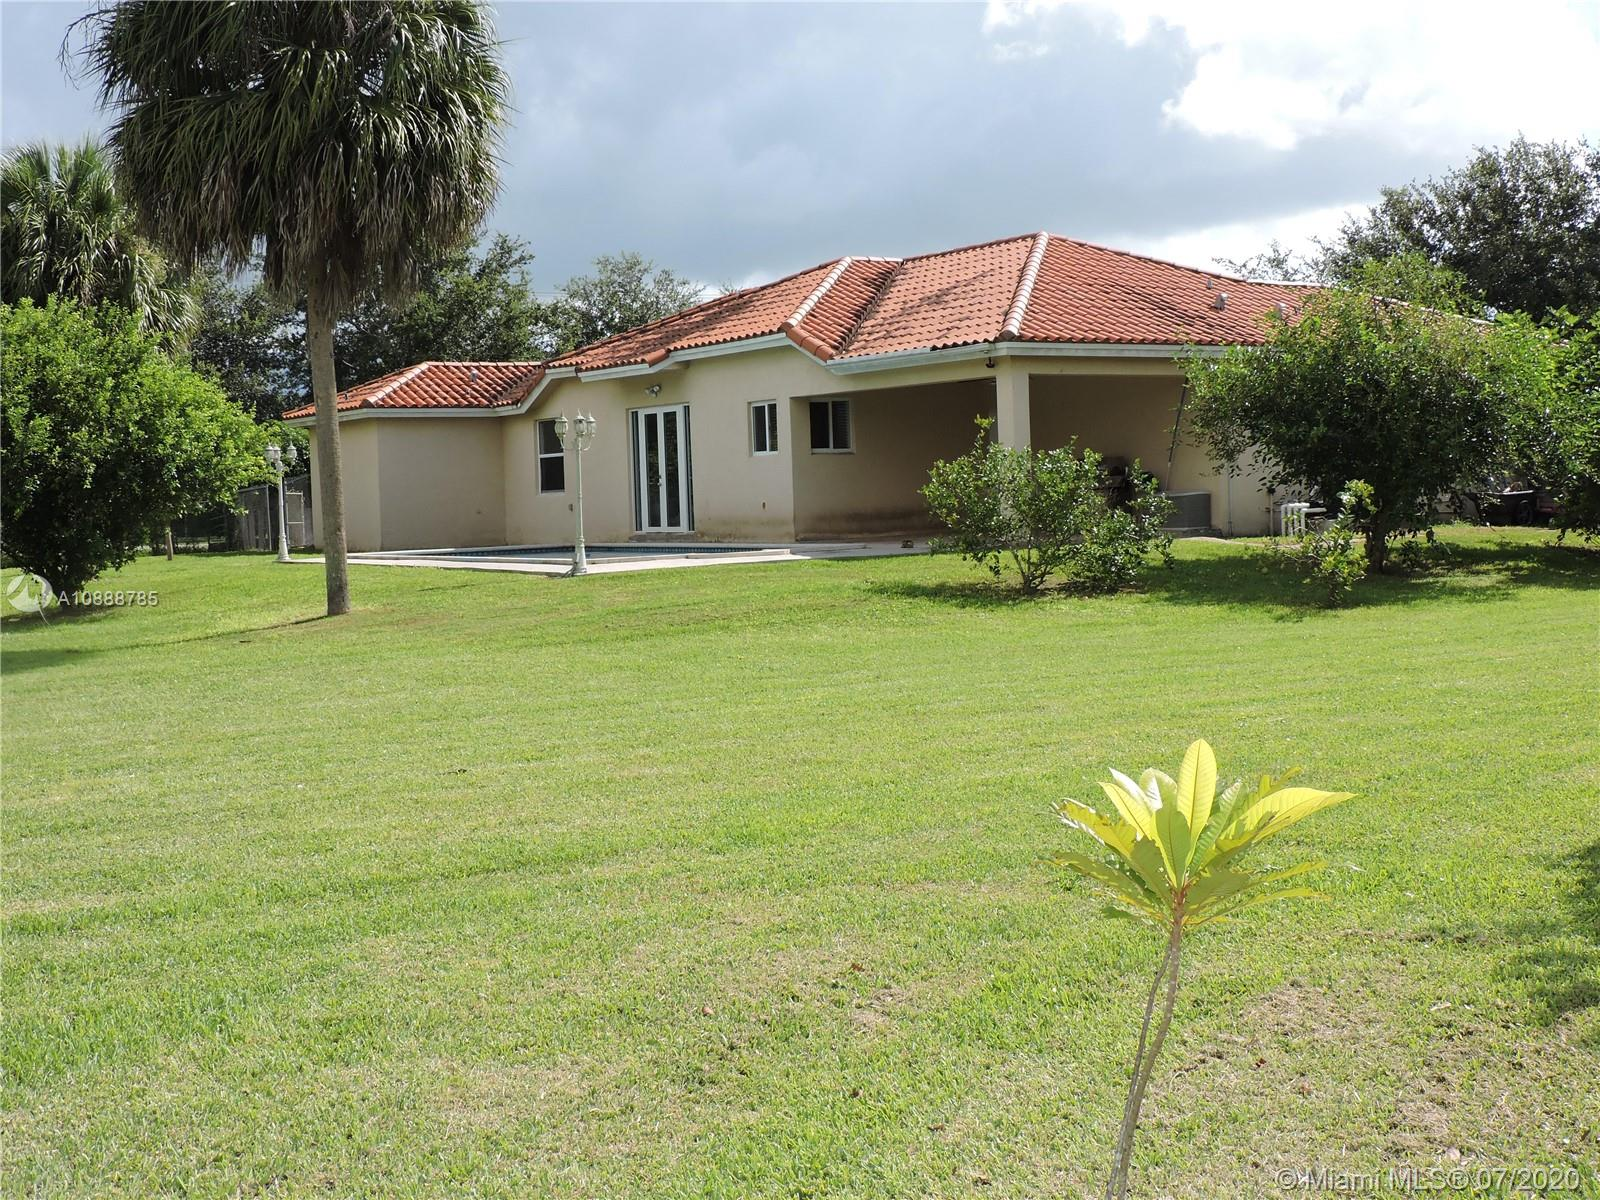 28804 SW 165th Ave Property Photo - Homestead, FL real estate listing